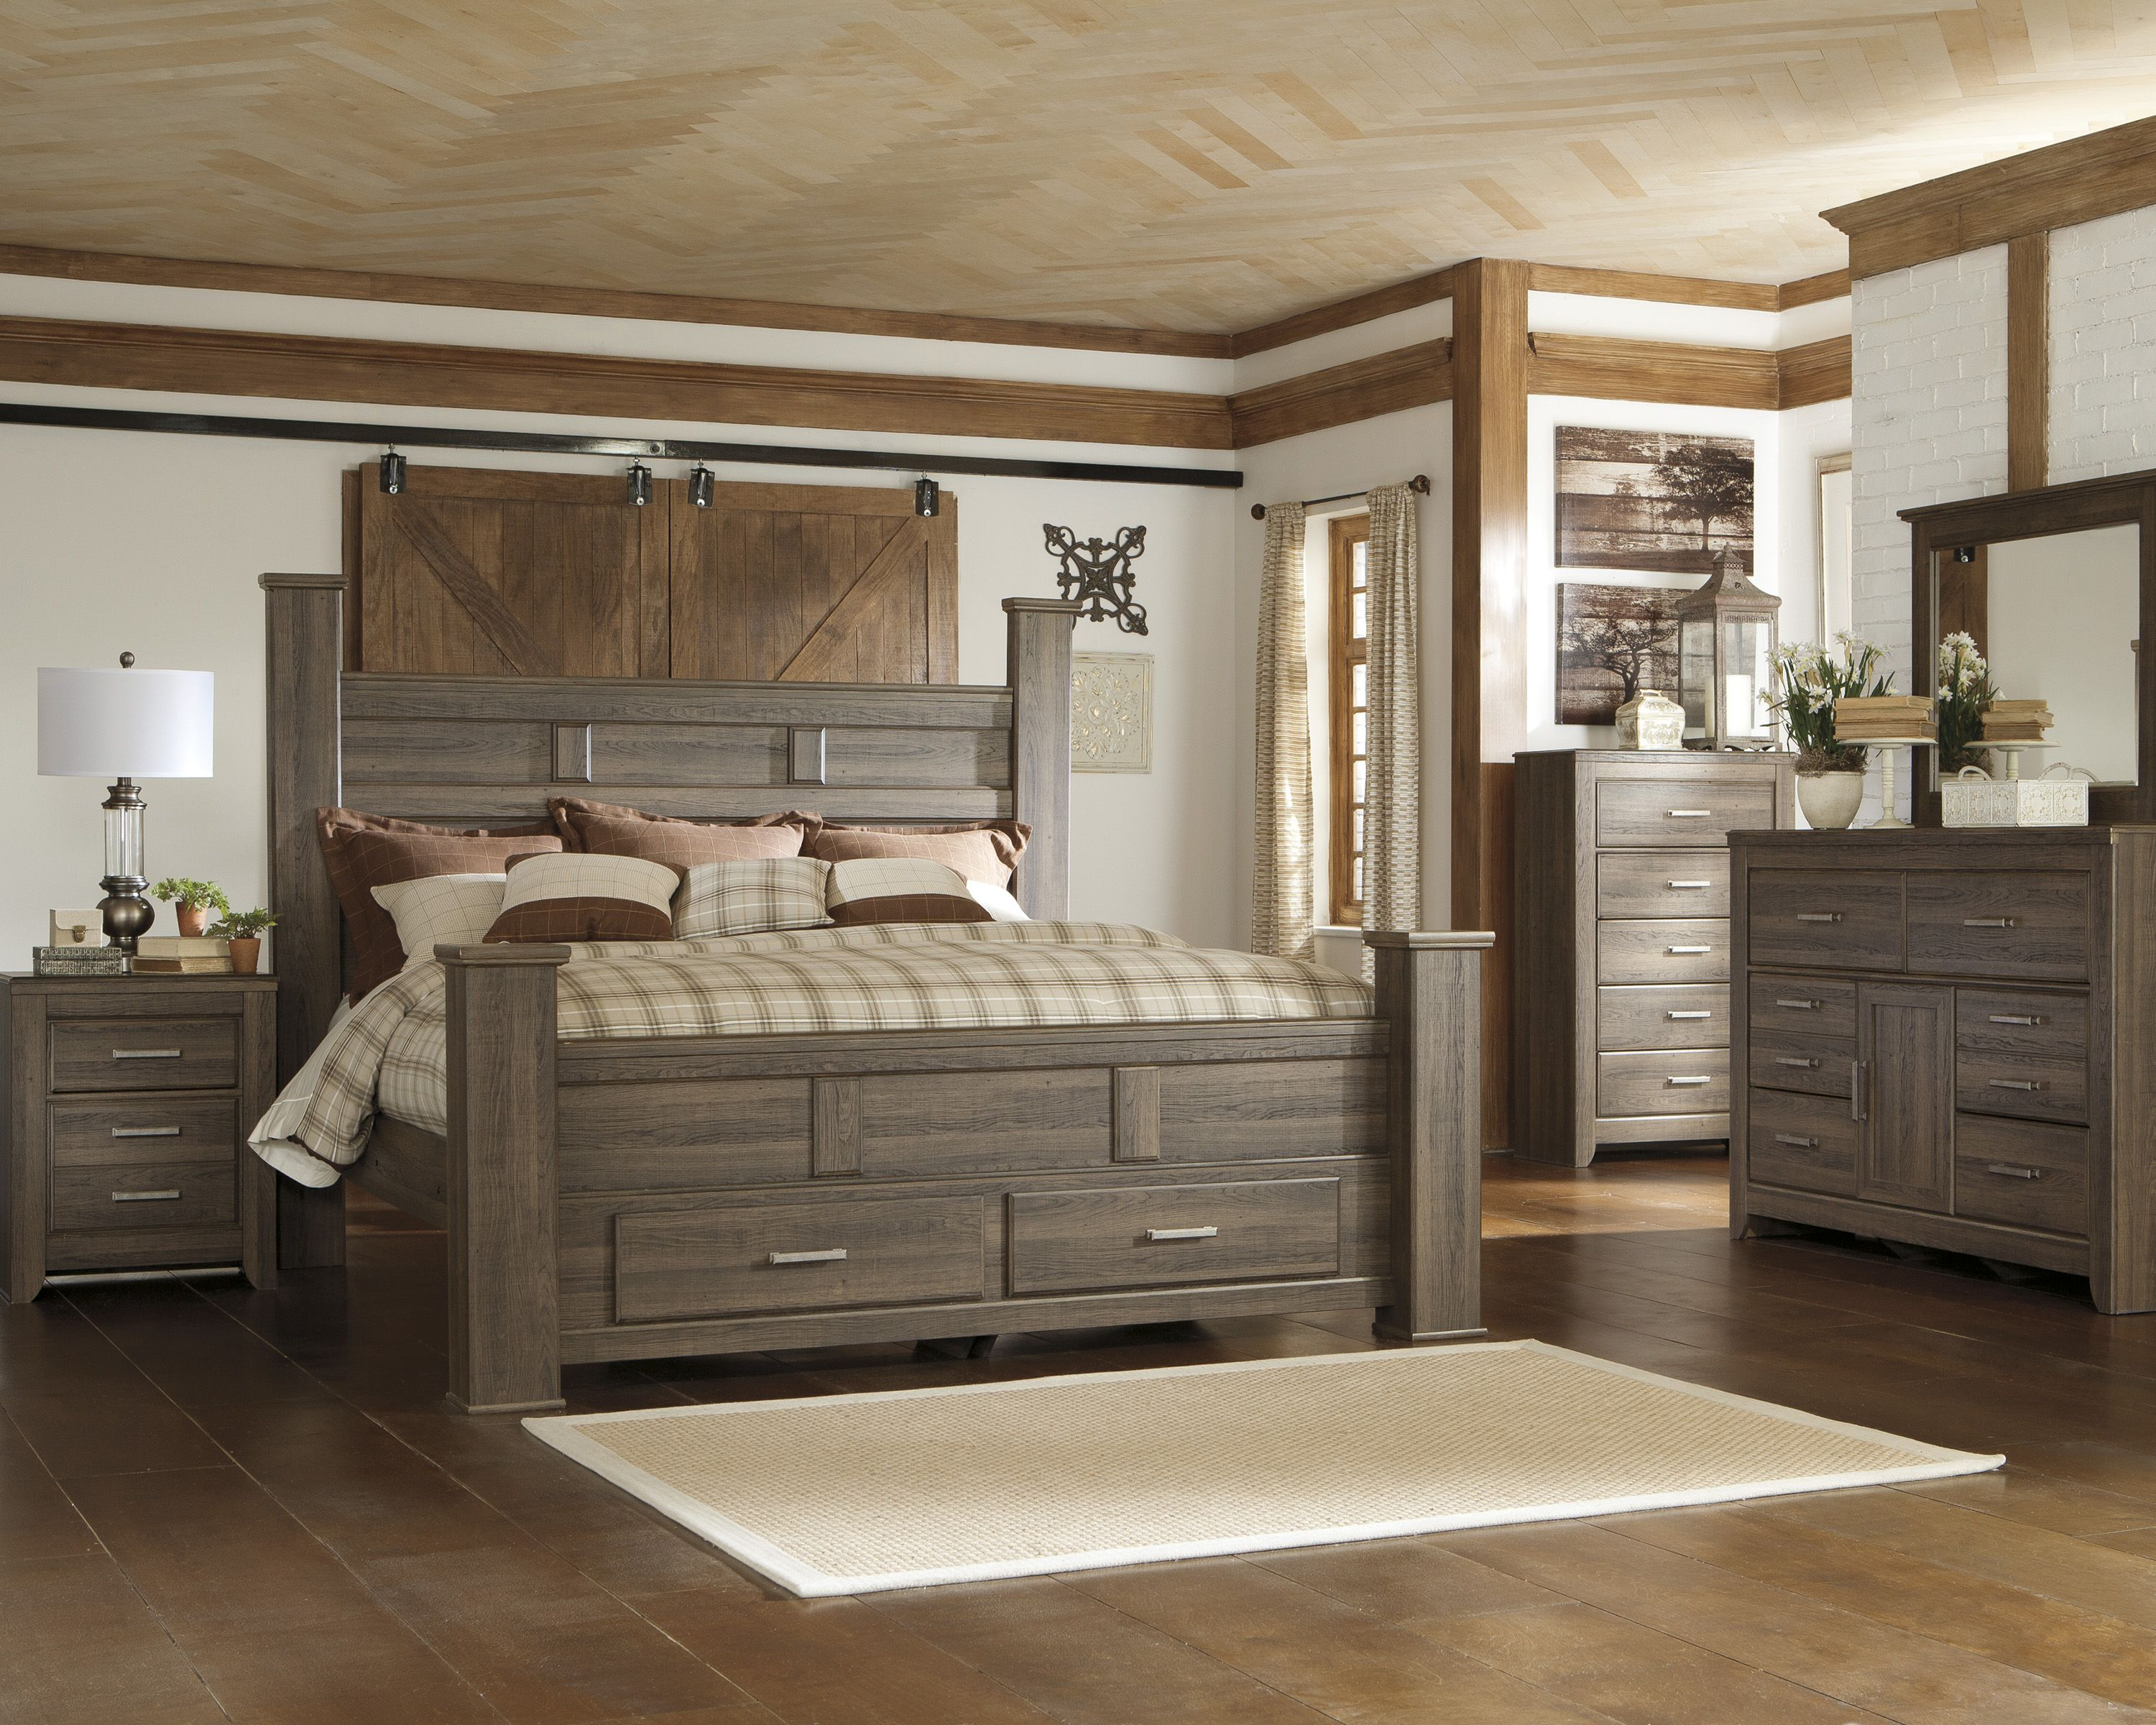 The Juararo Has An Option For A Storage Footboard In The Poster Bed Ashley Furniture Bedroom King Bedroom Sets Bedroom Set